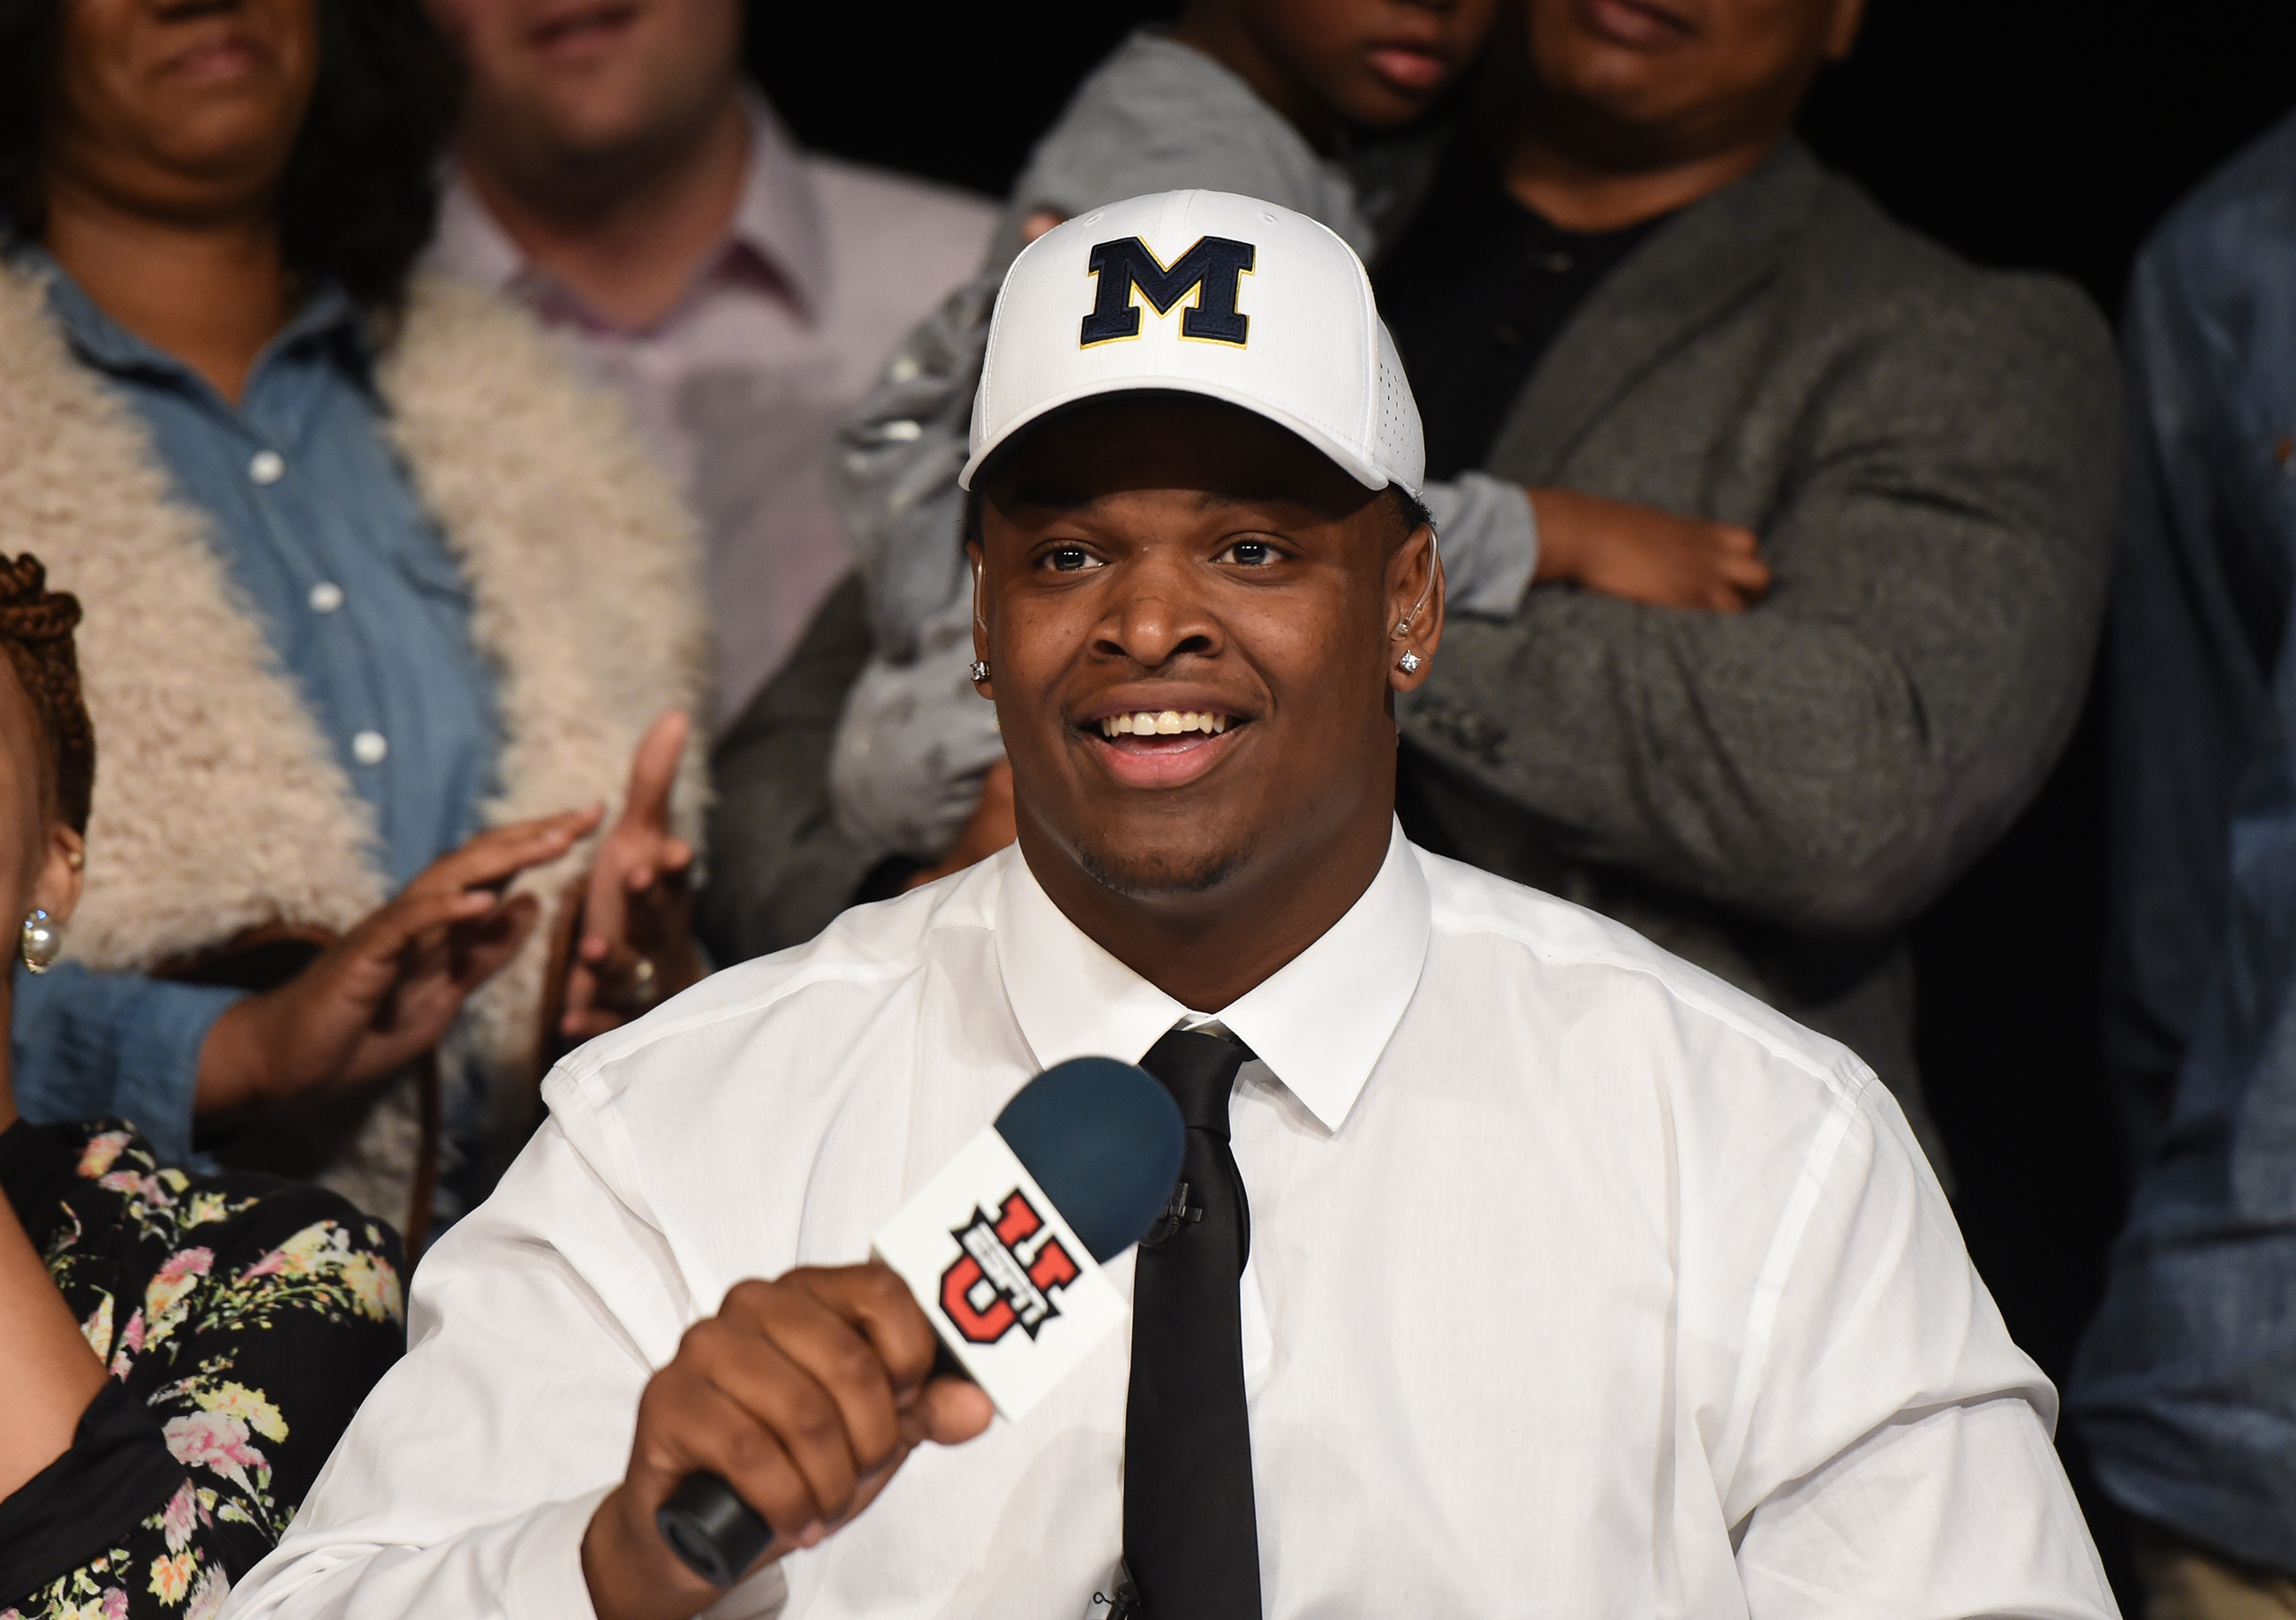 Feb 1, 2017; Leesburg, GA, USA; Lee County High School defensive tackle Aubrey Solomon commits to the Michigan Wolverines during National Signing Day. Mandatory Credit: Adam Hagy-USA TODAY Sports